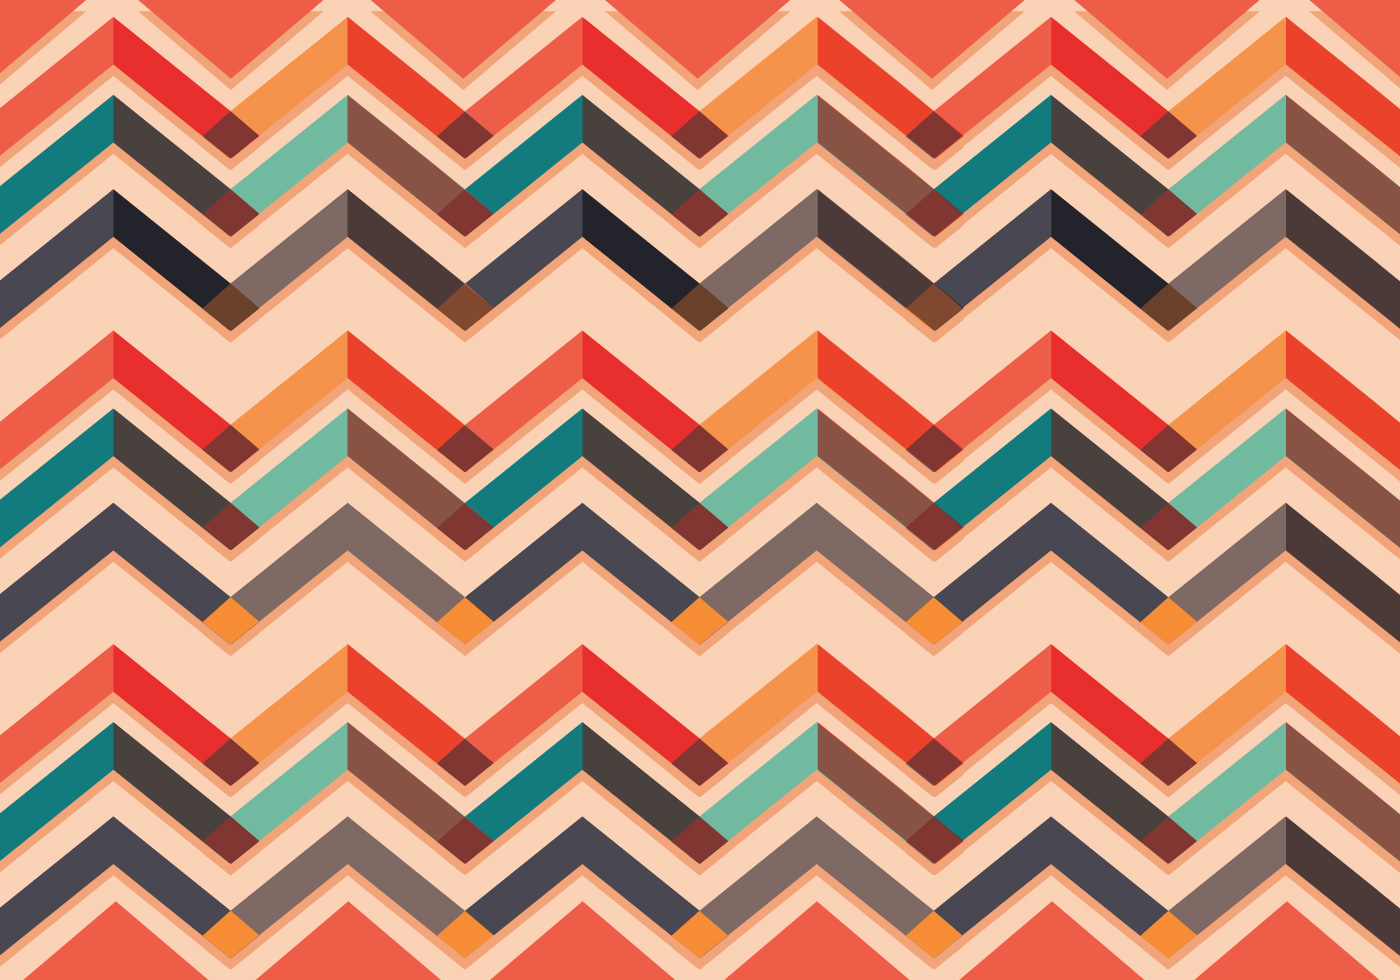 chevron pattern vector colorful download free vector art stock graphics images. Black Bedroom Furniture Sets. Home Design Ideas